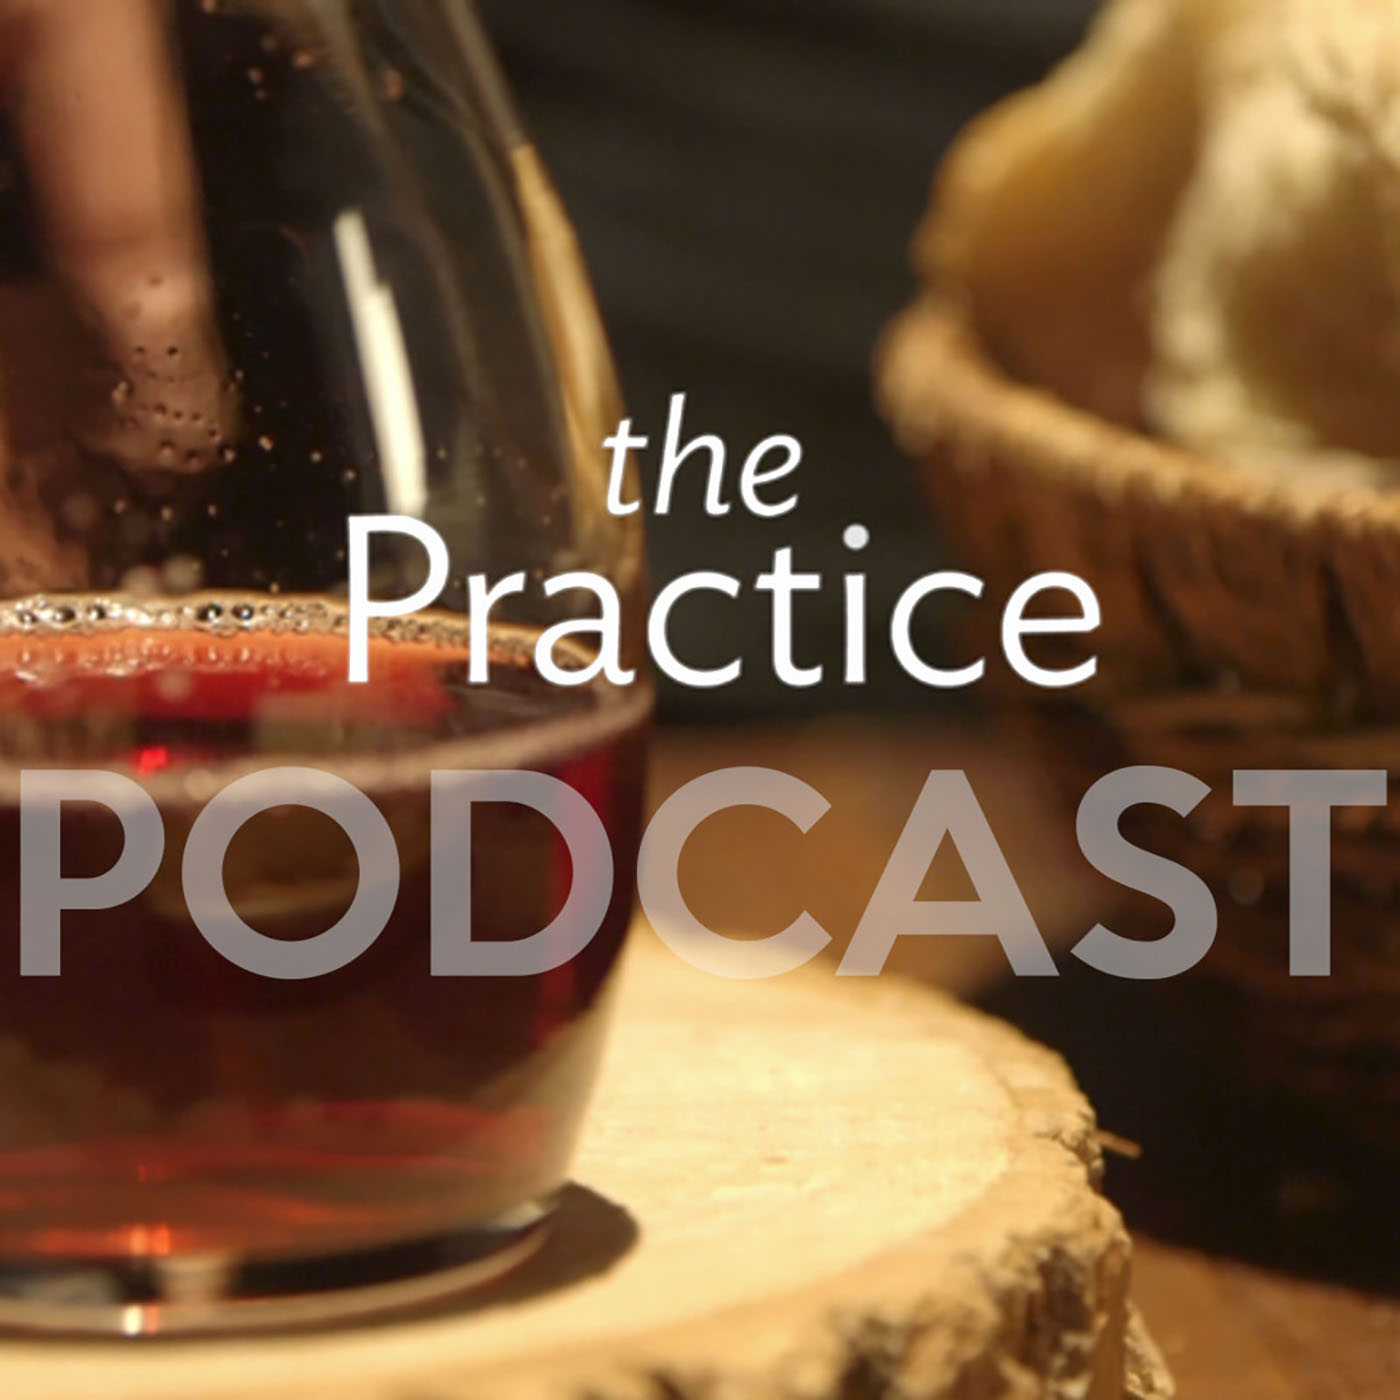 The Practice Church Podcast show art